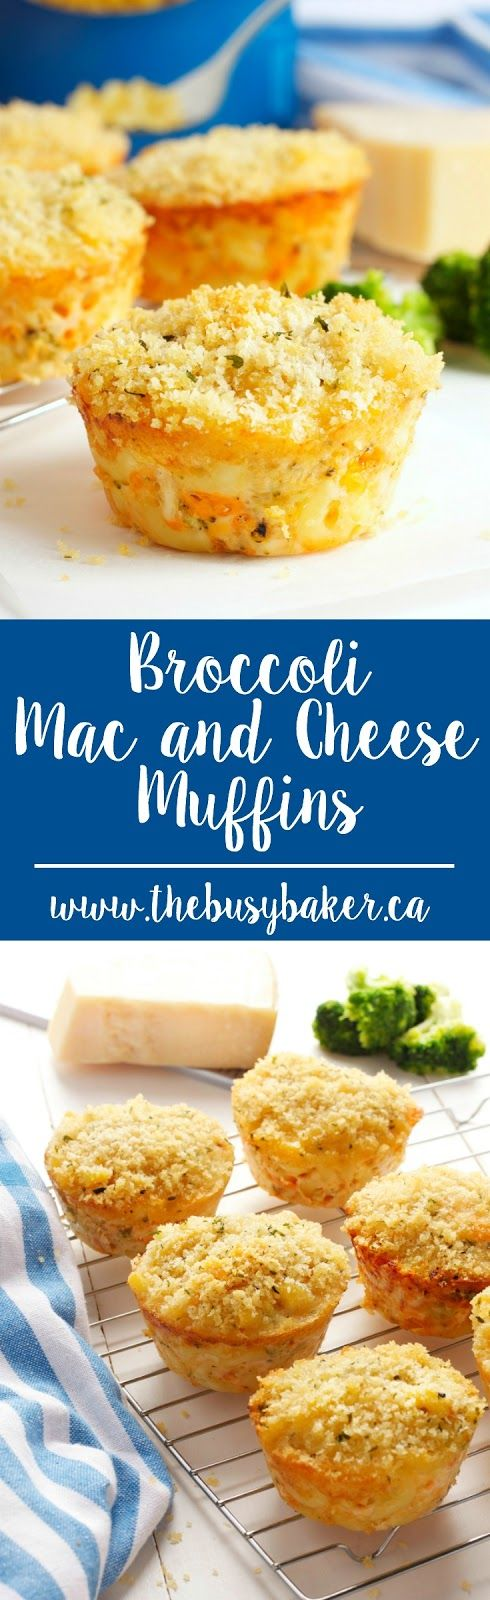 These Broccoli Mac and Cheese Muffins are the perfect side dish for Father's Day! www.thebusybaker.ca #fathersday #macandcheese